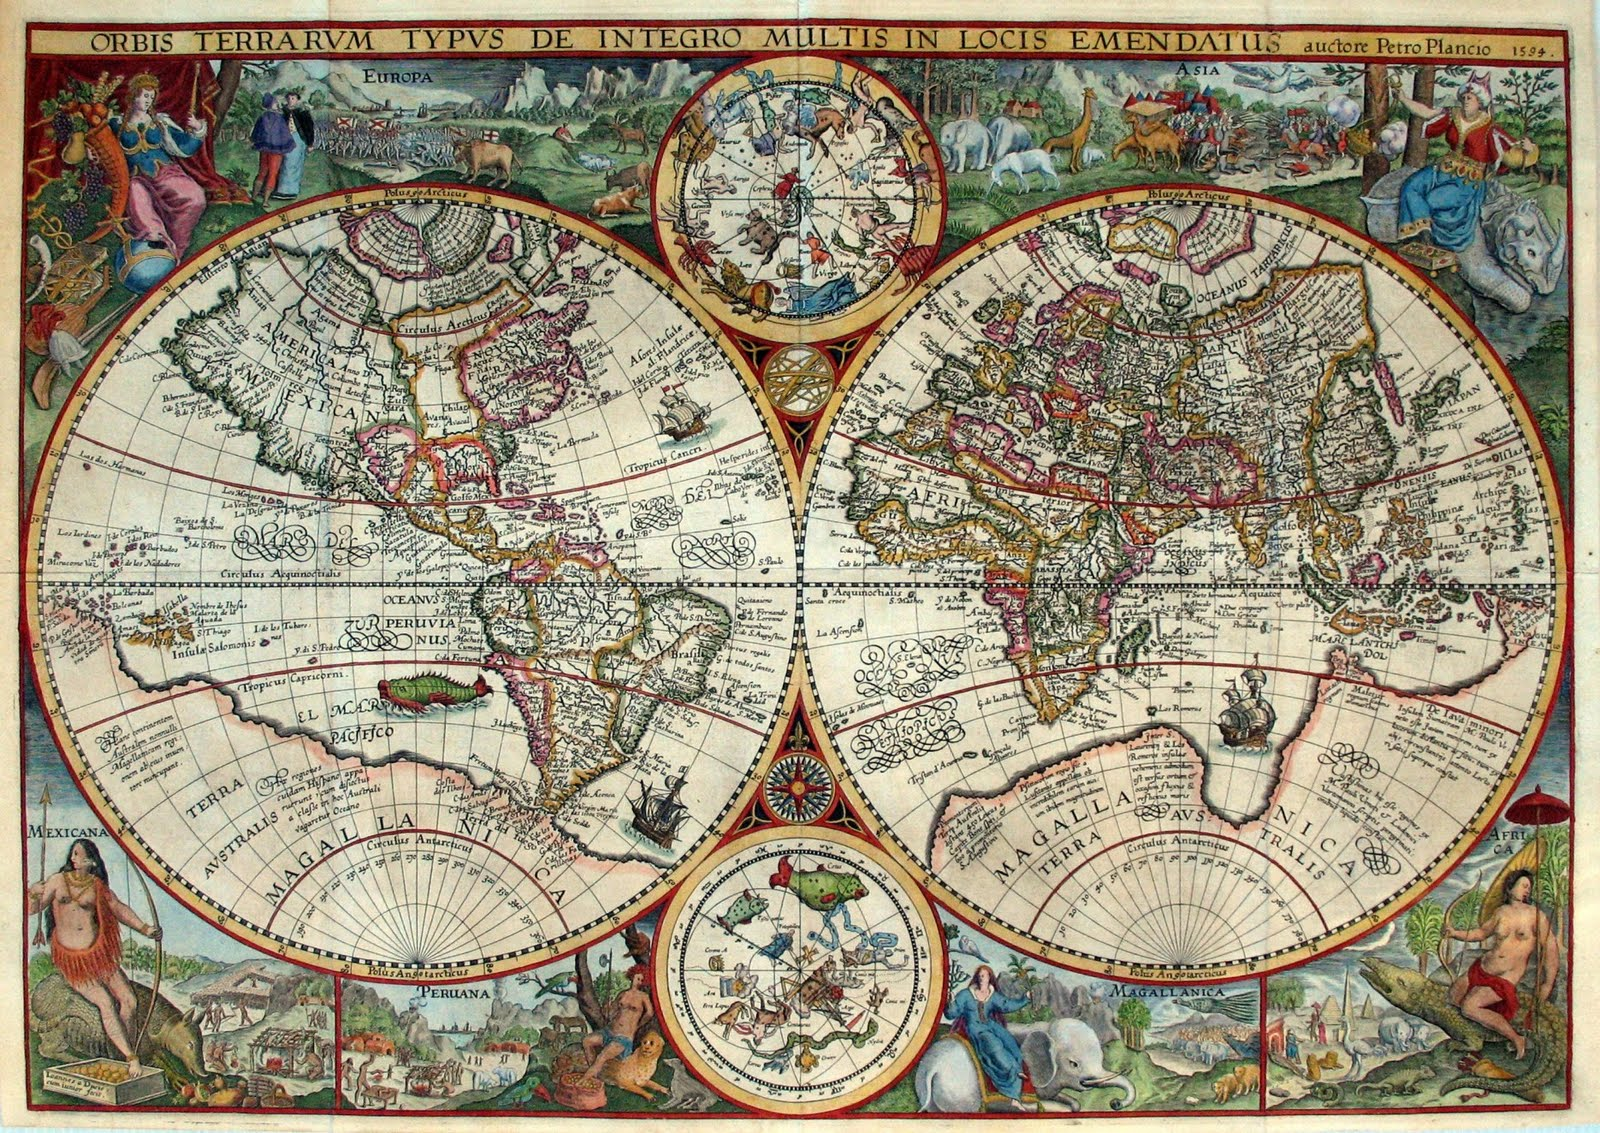 Ancient world maps world map 16th century world map 16th century description orbis terrarum published by the dutch astronomer cartographer and clergyman petrus plancius in 1594 gumiabroncs Choice Image